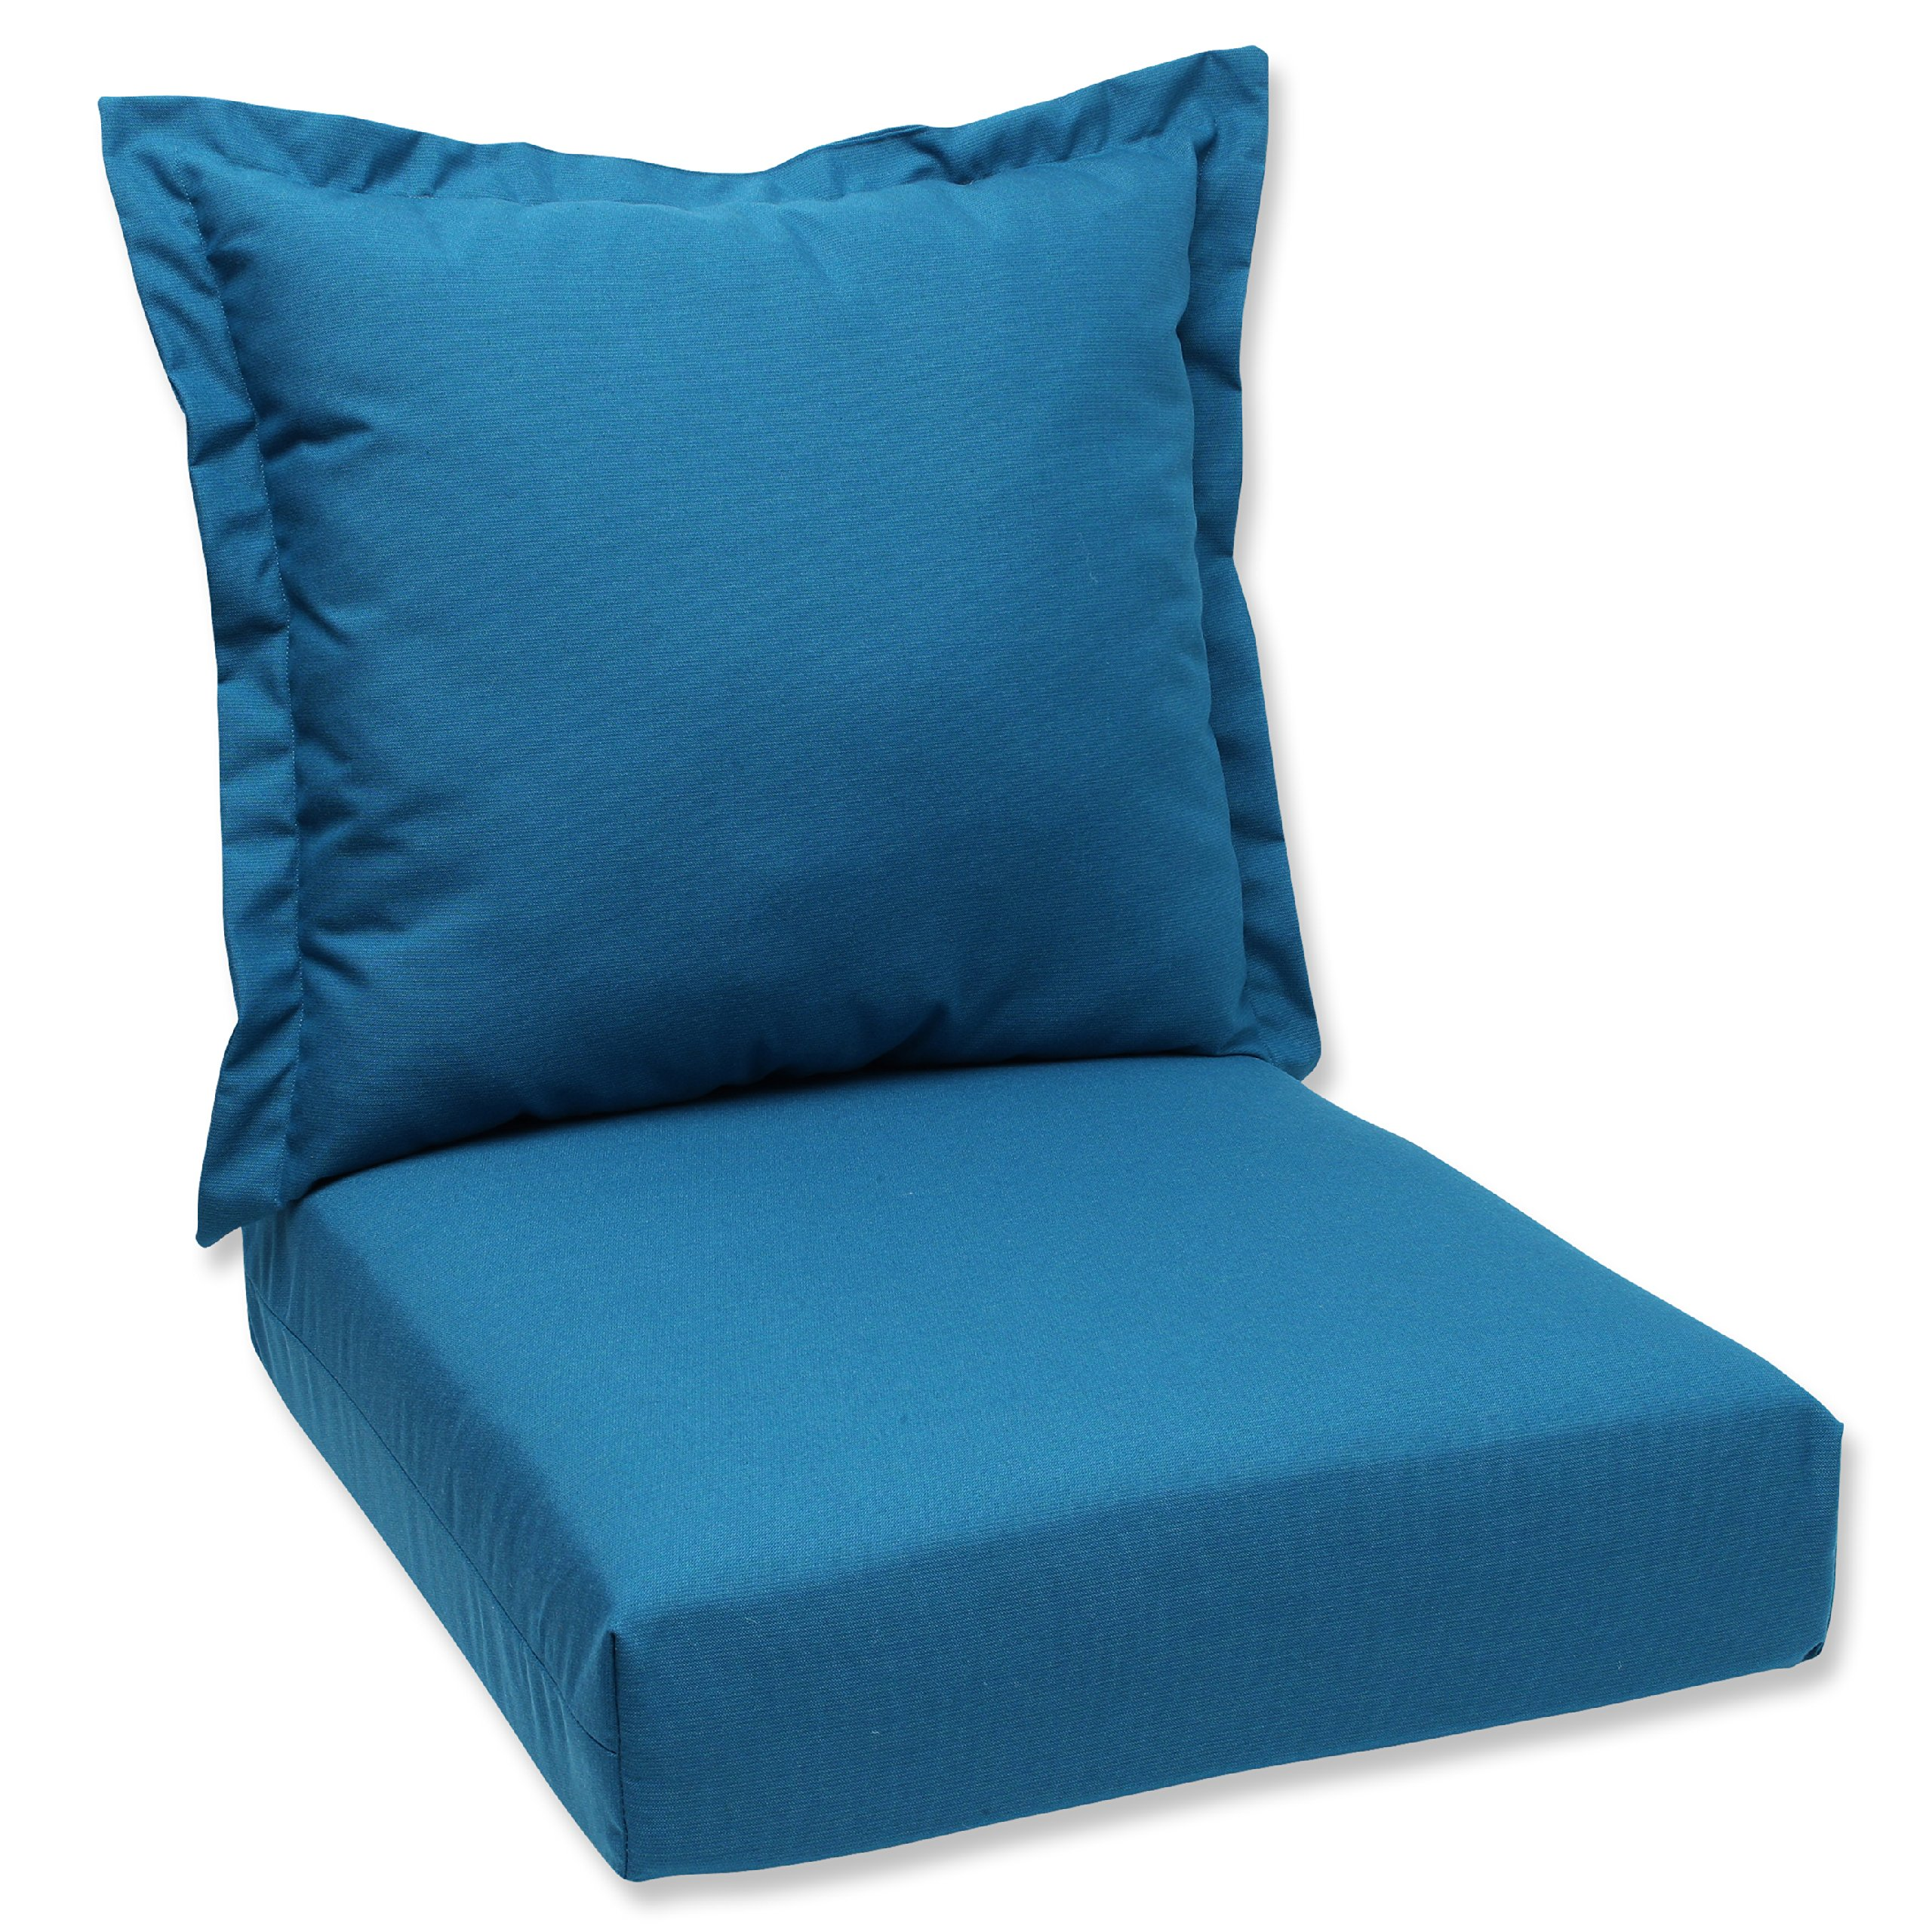 Sunbrella Replacement Cushions for Outdoor Furniture: Amazon.com